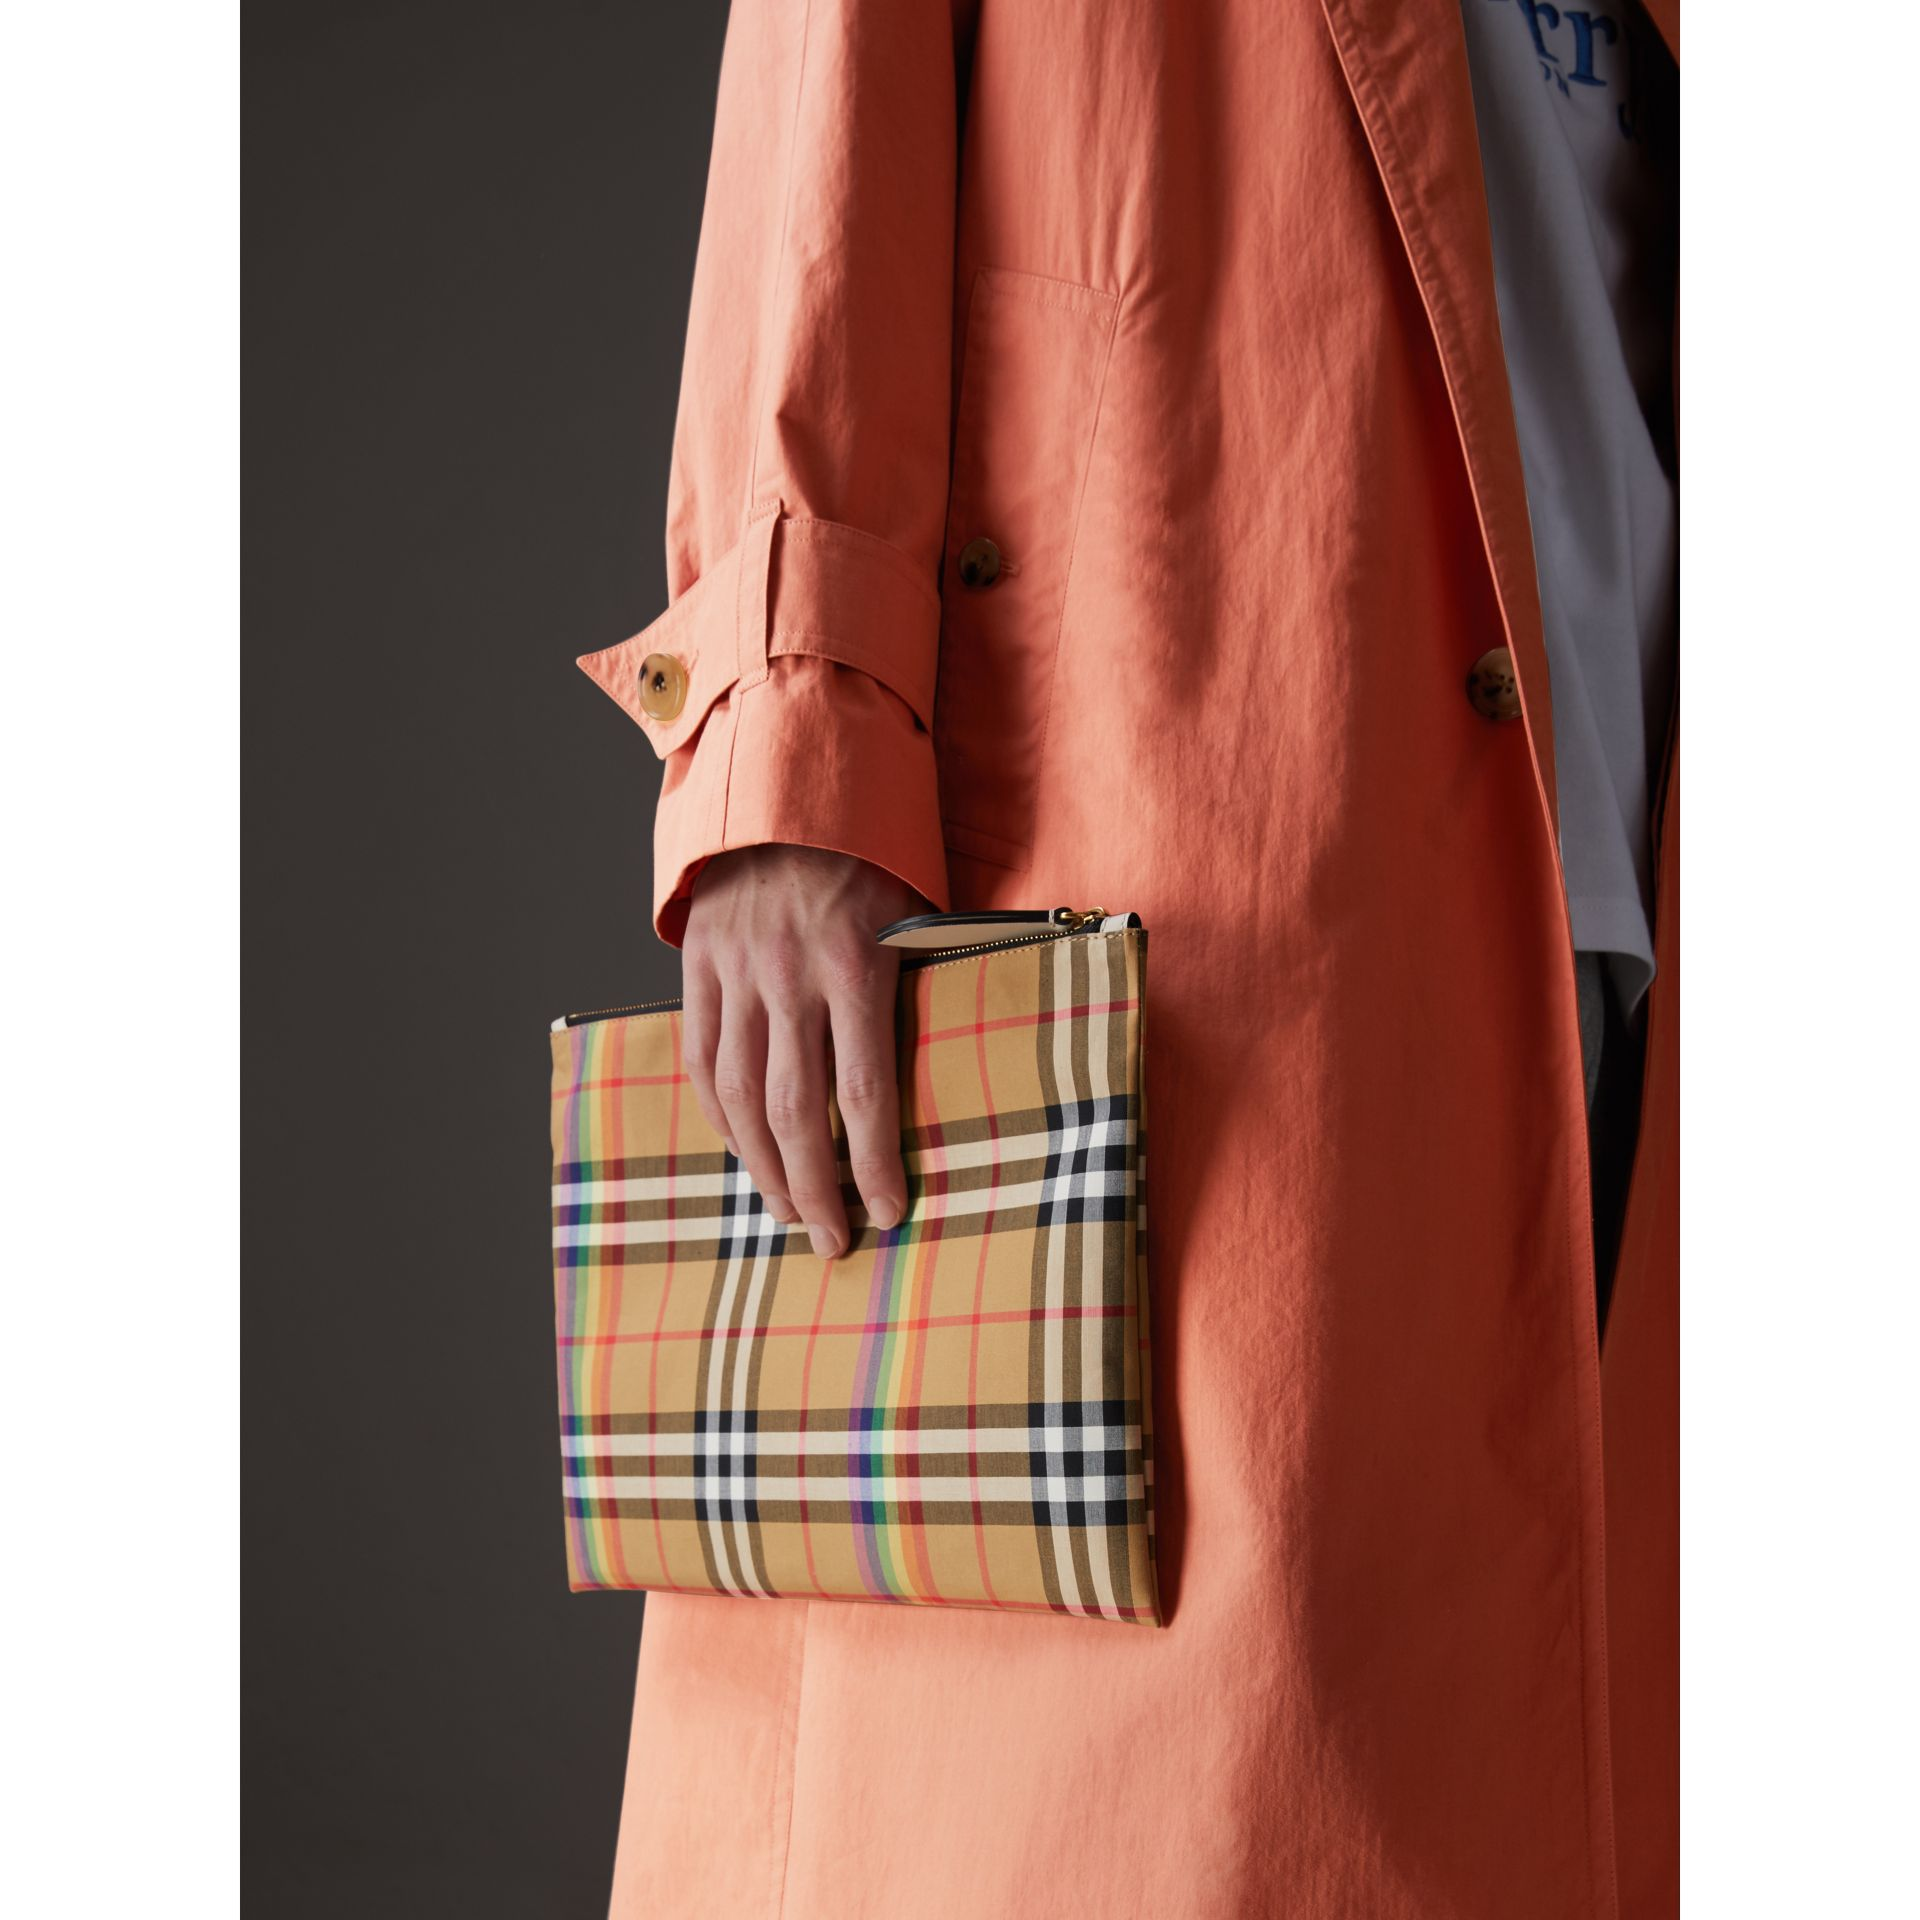 Medium Rainbow Vintage Check Pouch in Natural | Burberry United States - gallery image 5